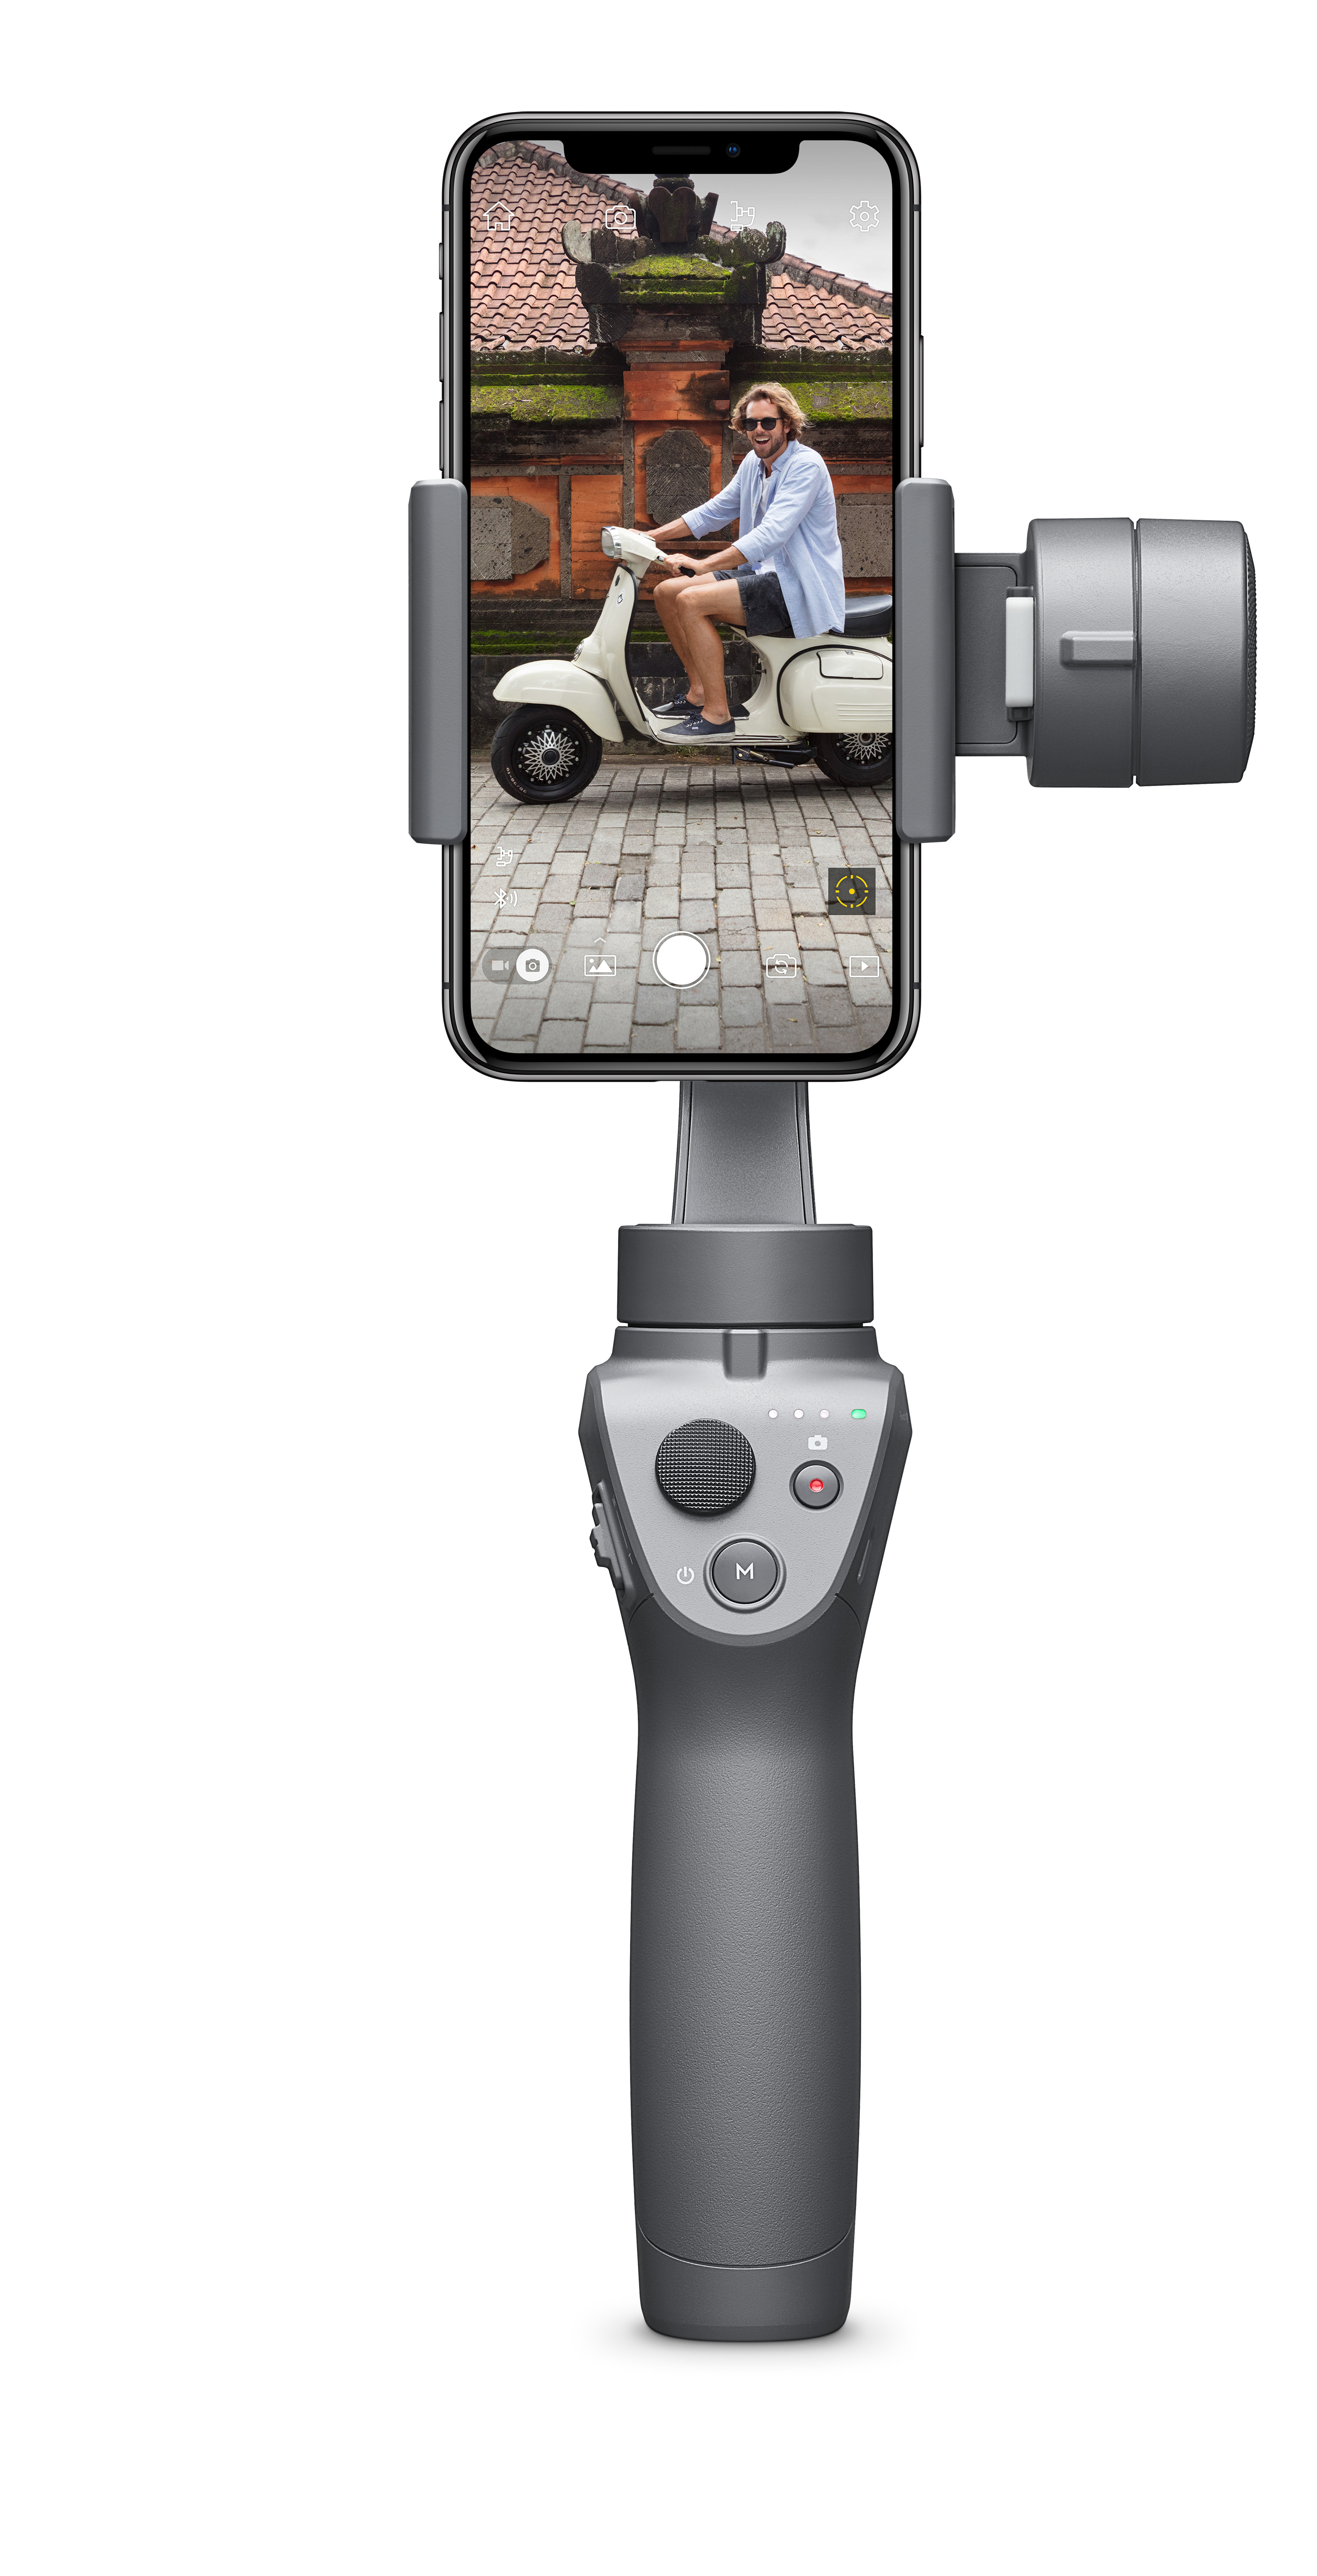 new product 02dd5 838b8 DJI OSMO Mobile 2 Gimbal for iPhone